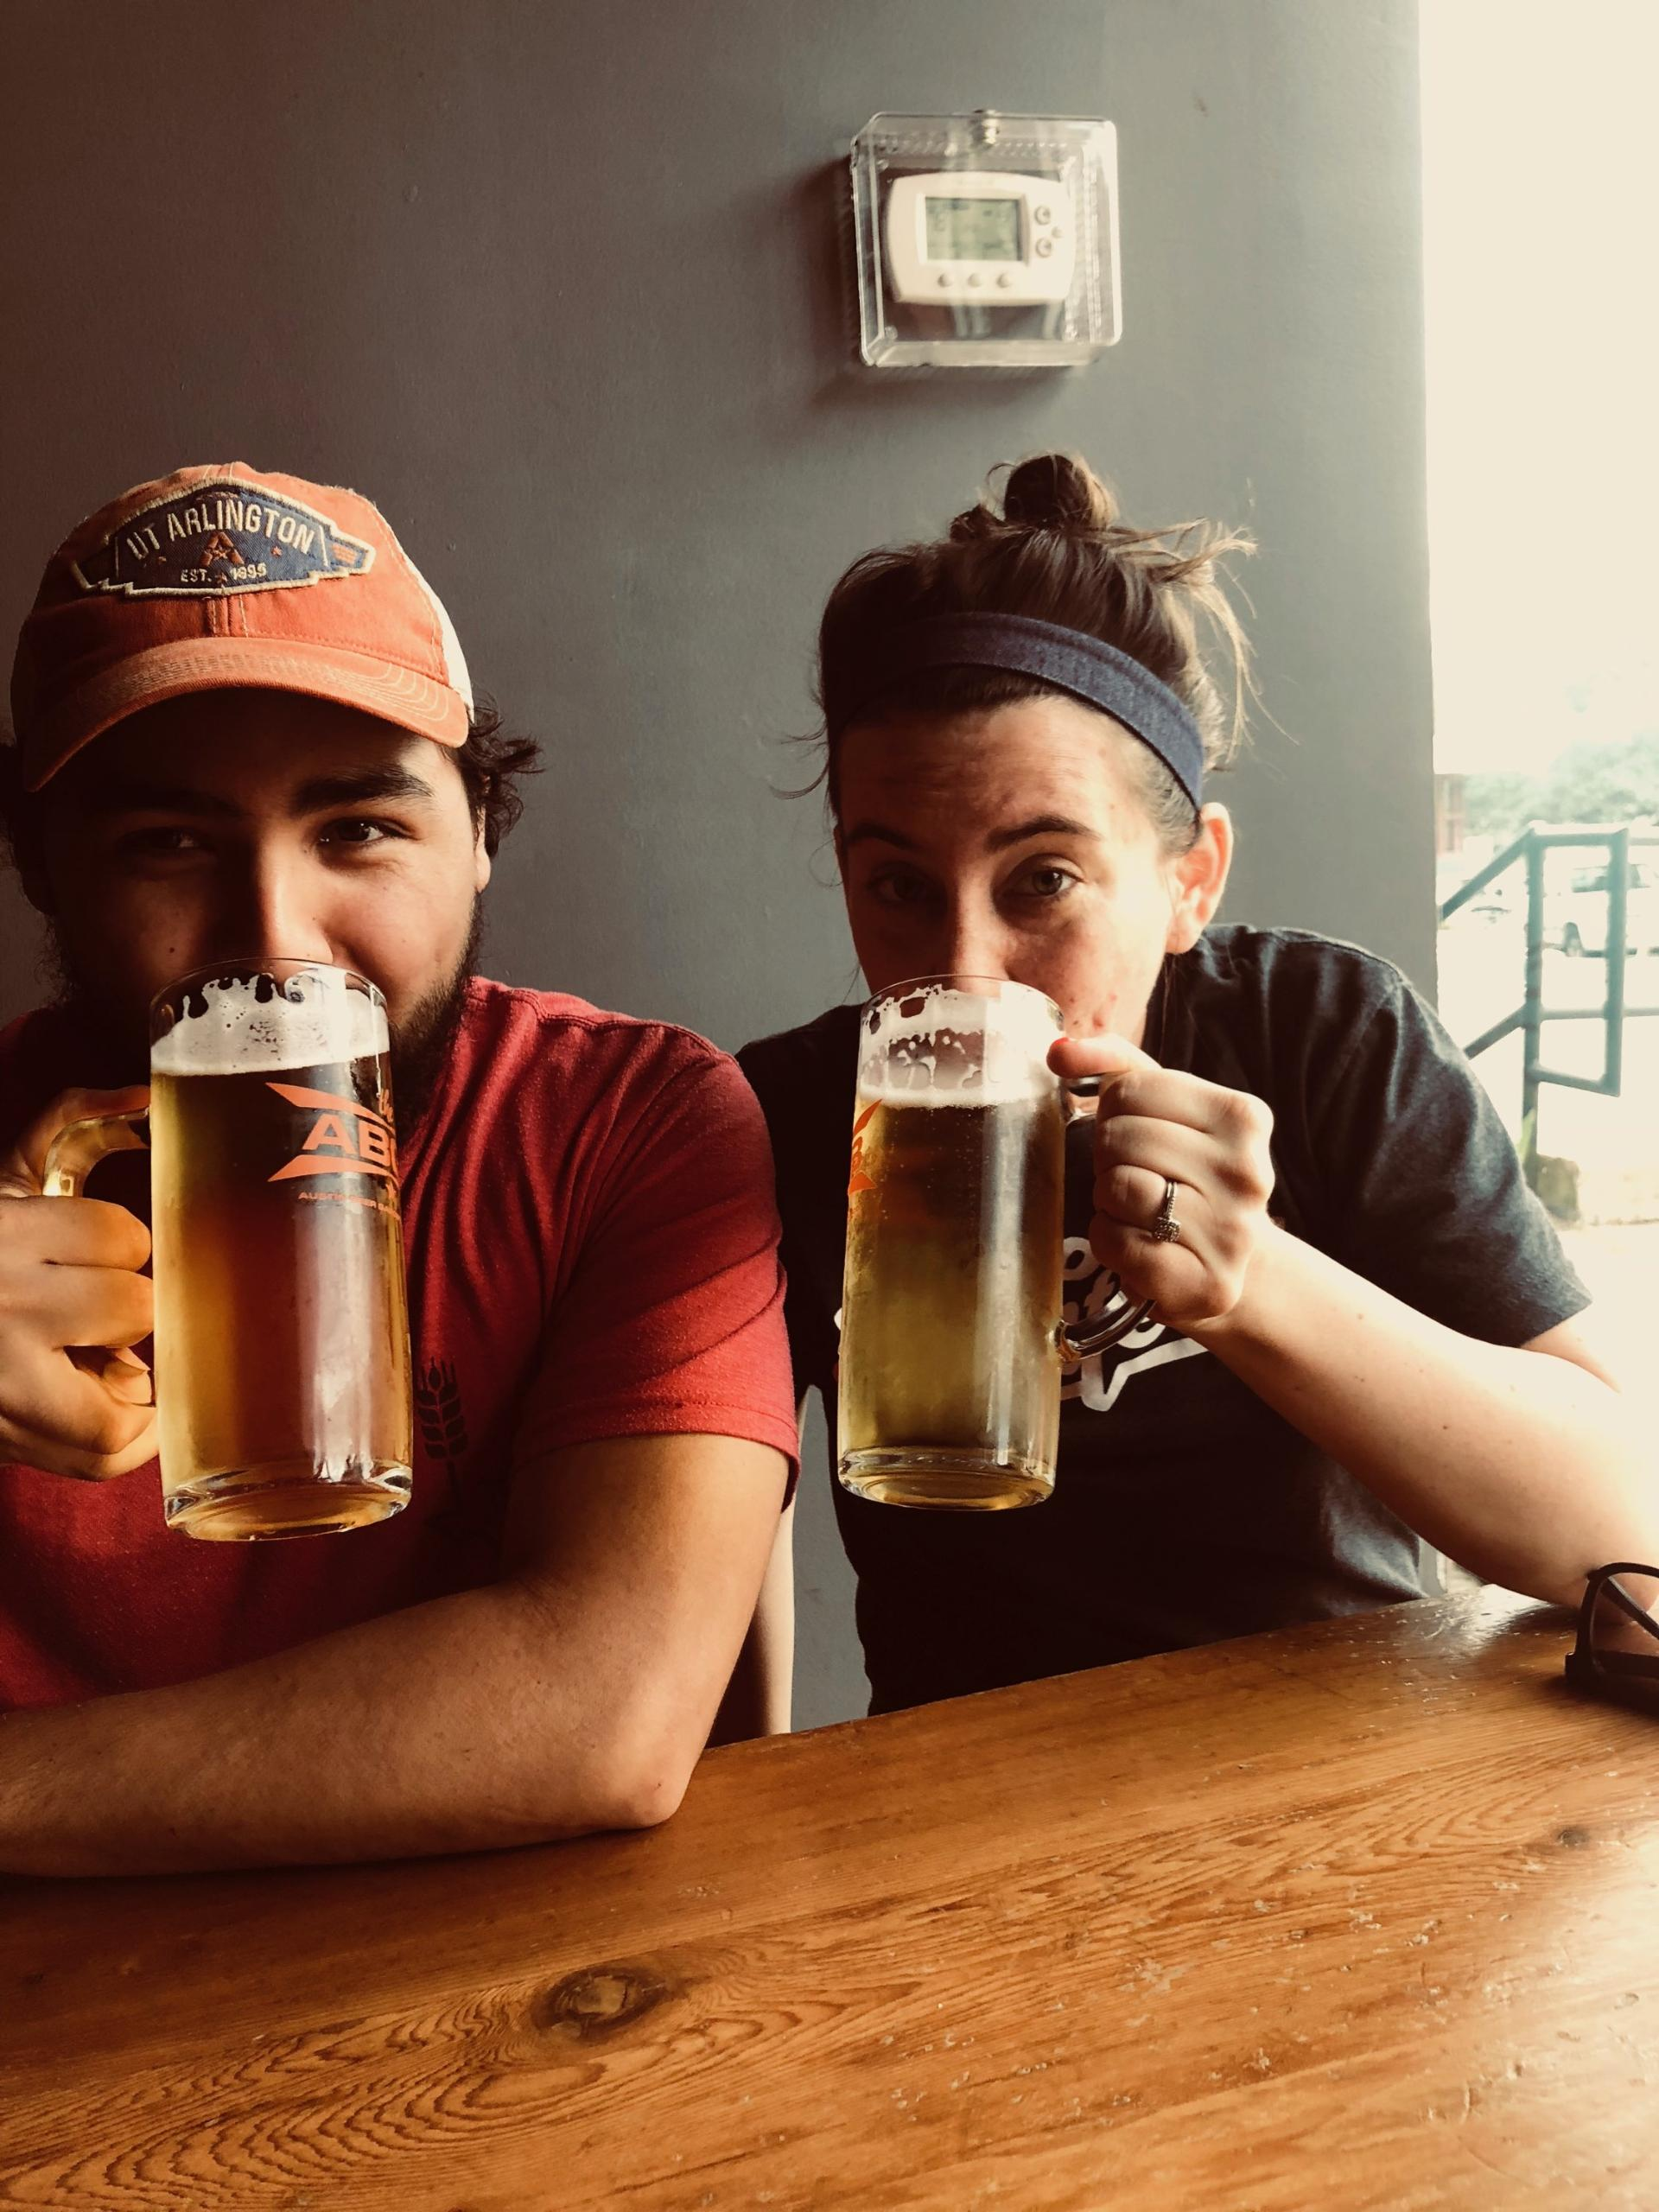 Juan and his wife Kristen enjoying a great Texas made beer.